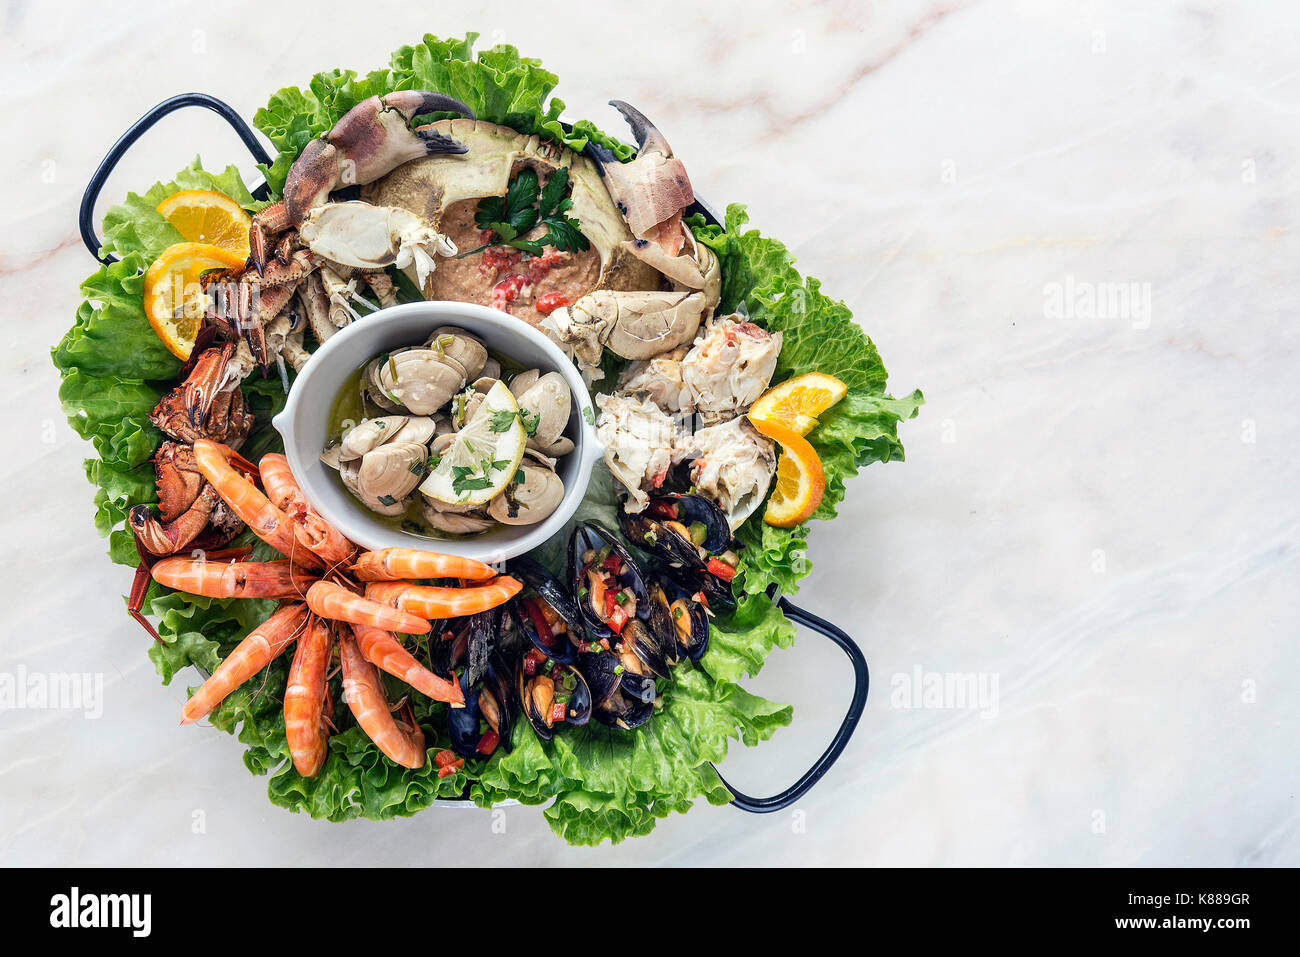 mixed fresh portuguese seafood selection gourmet set platter meal on table - Stock Image